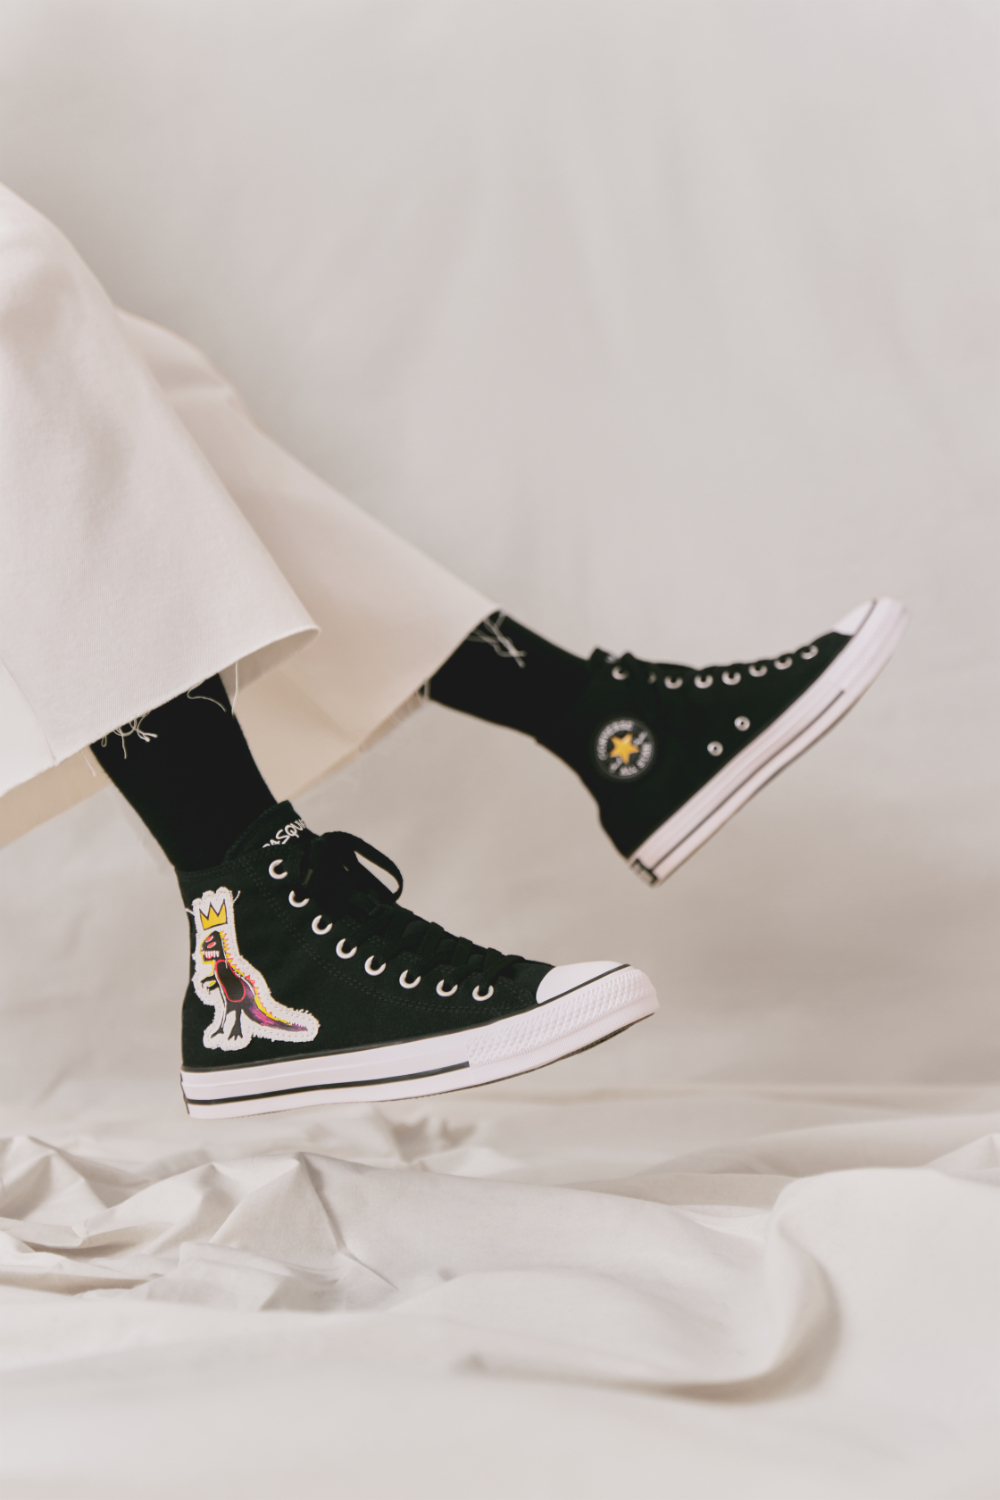 Converse Celebrates Jean-Michel Basquiat's Legacy for Latest Collection